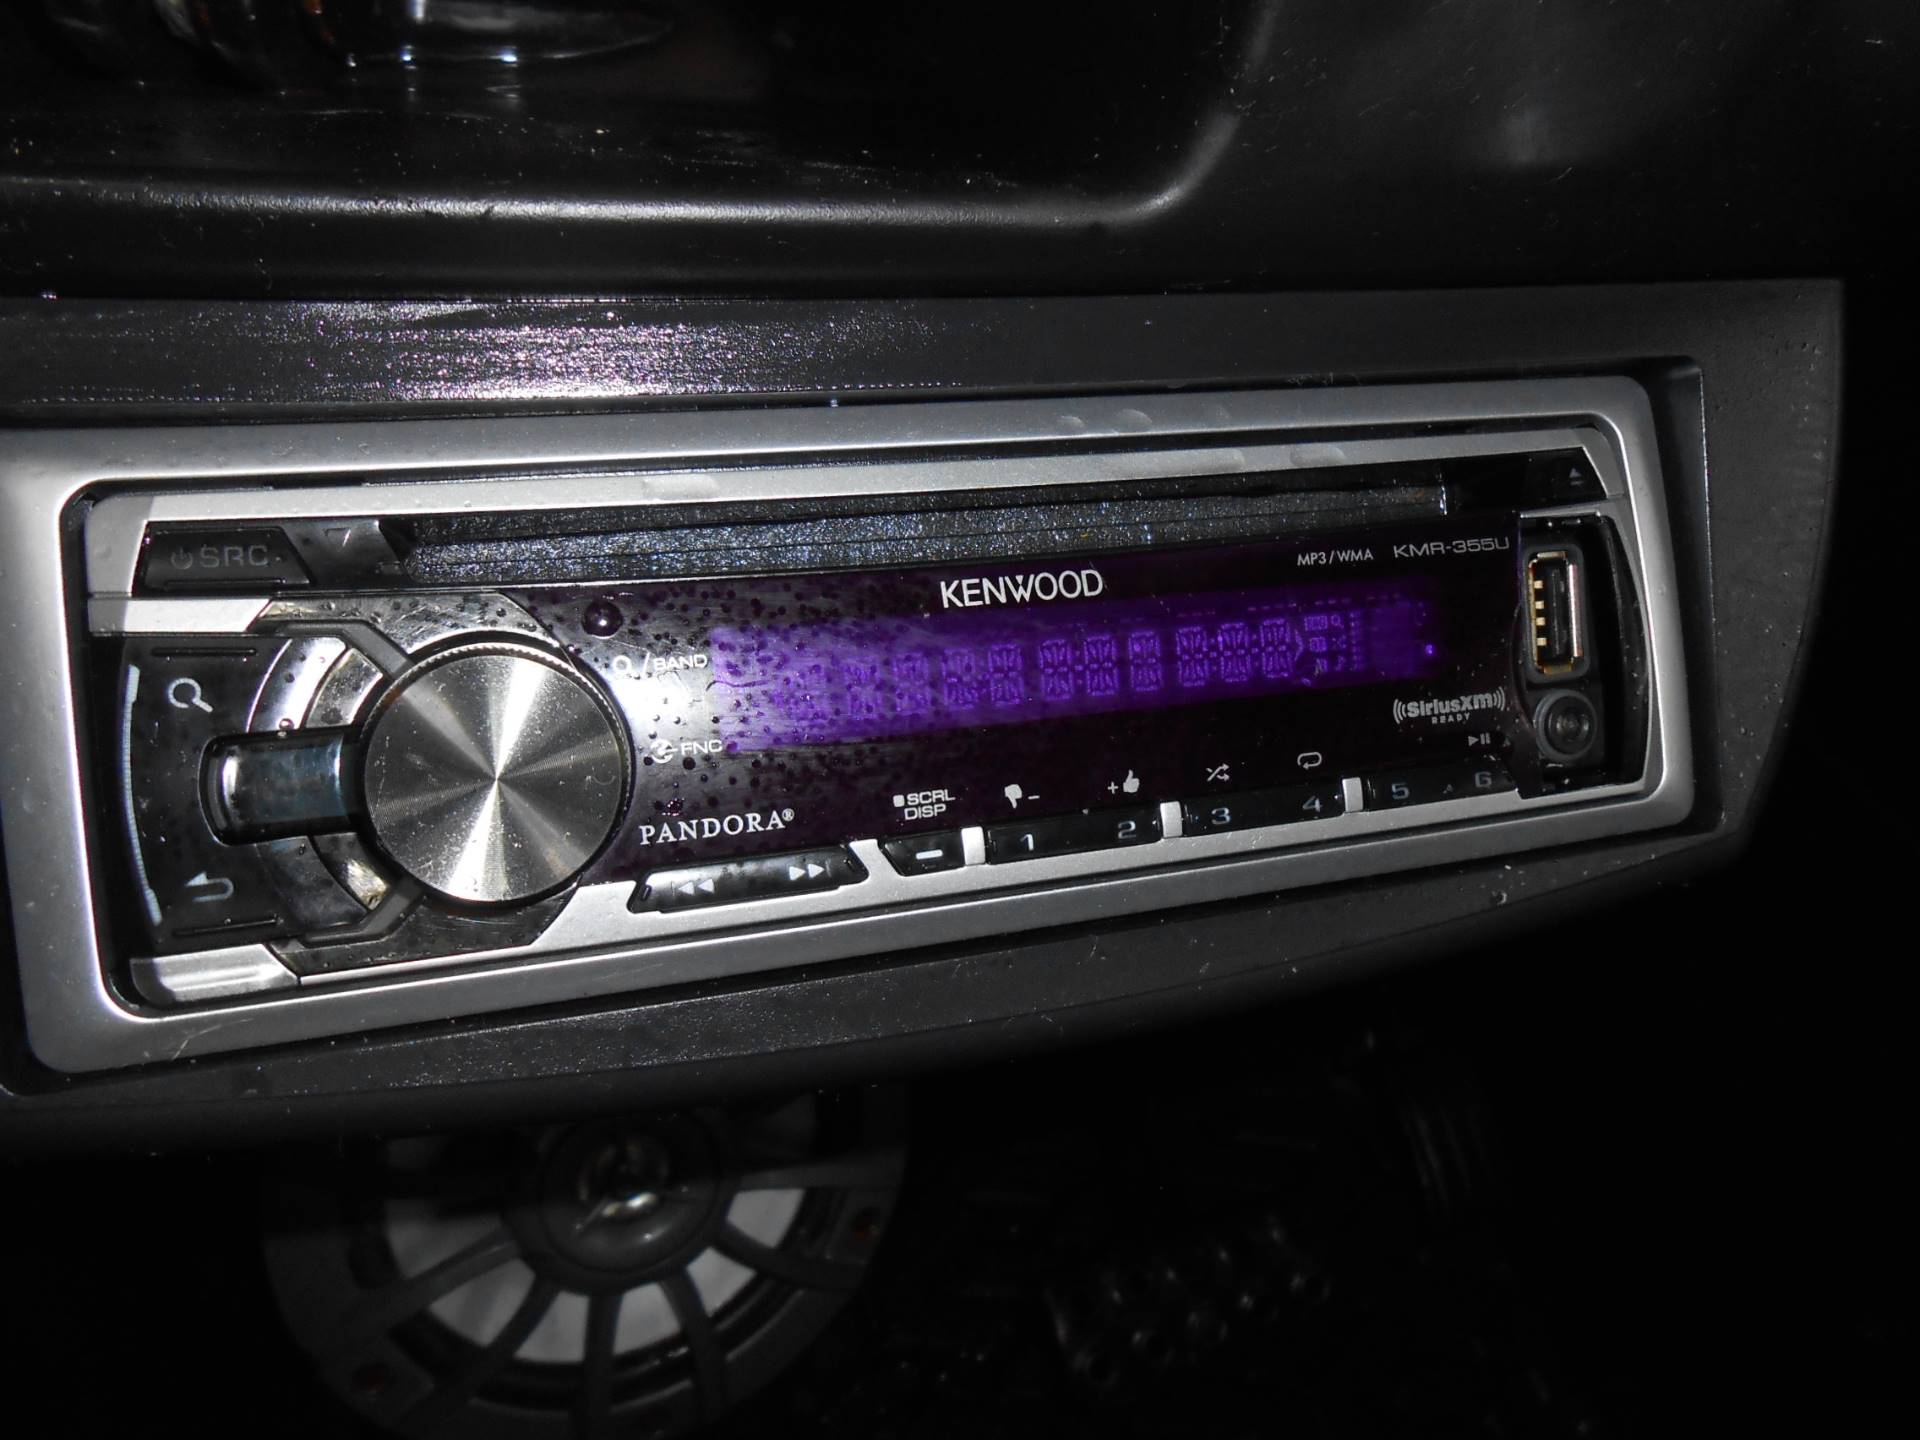 Kenwood CD/Bluetooth stereo - Photo 37